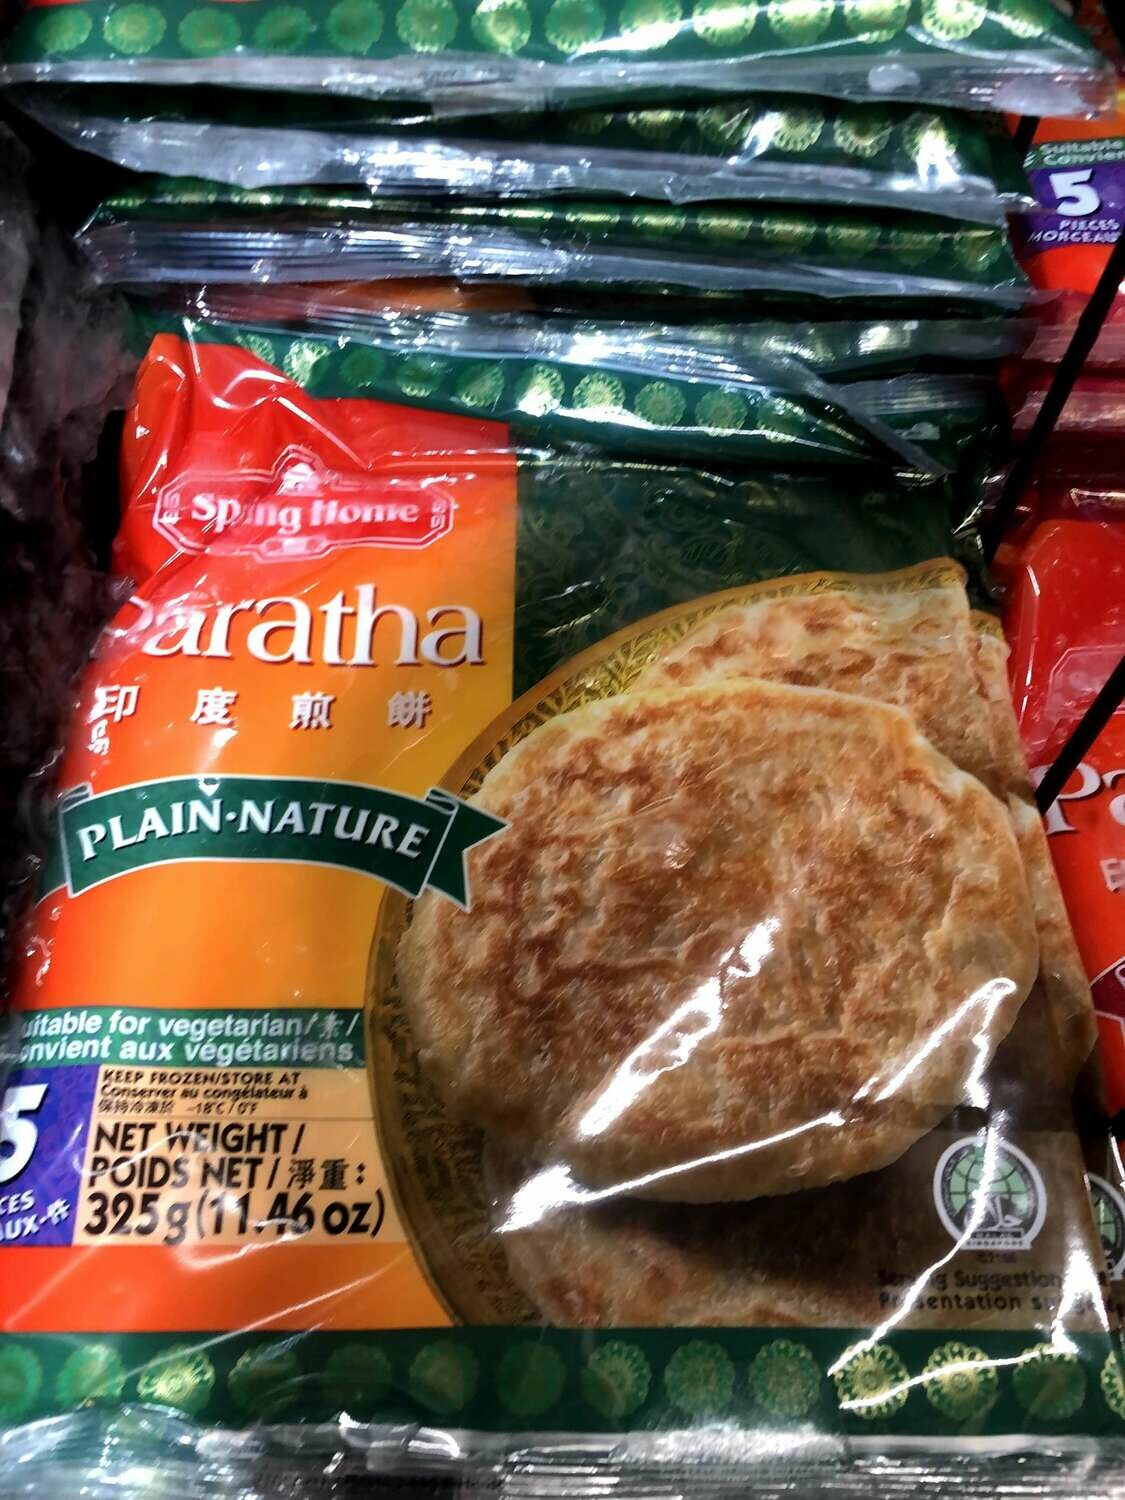 【RBF】Spring Home Paratha Plain Nature第一家 印度煎饼 原味 11.46oz(325g)